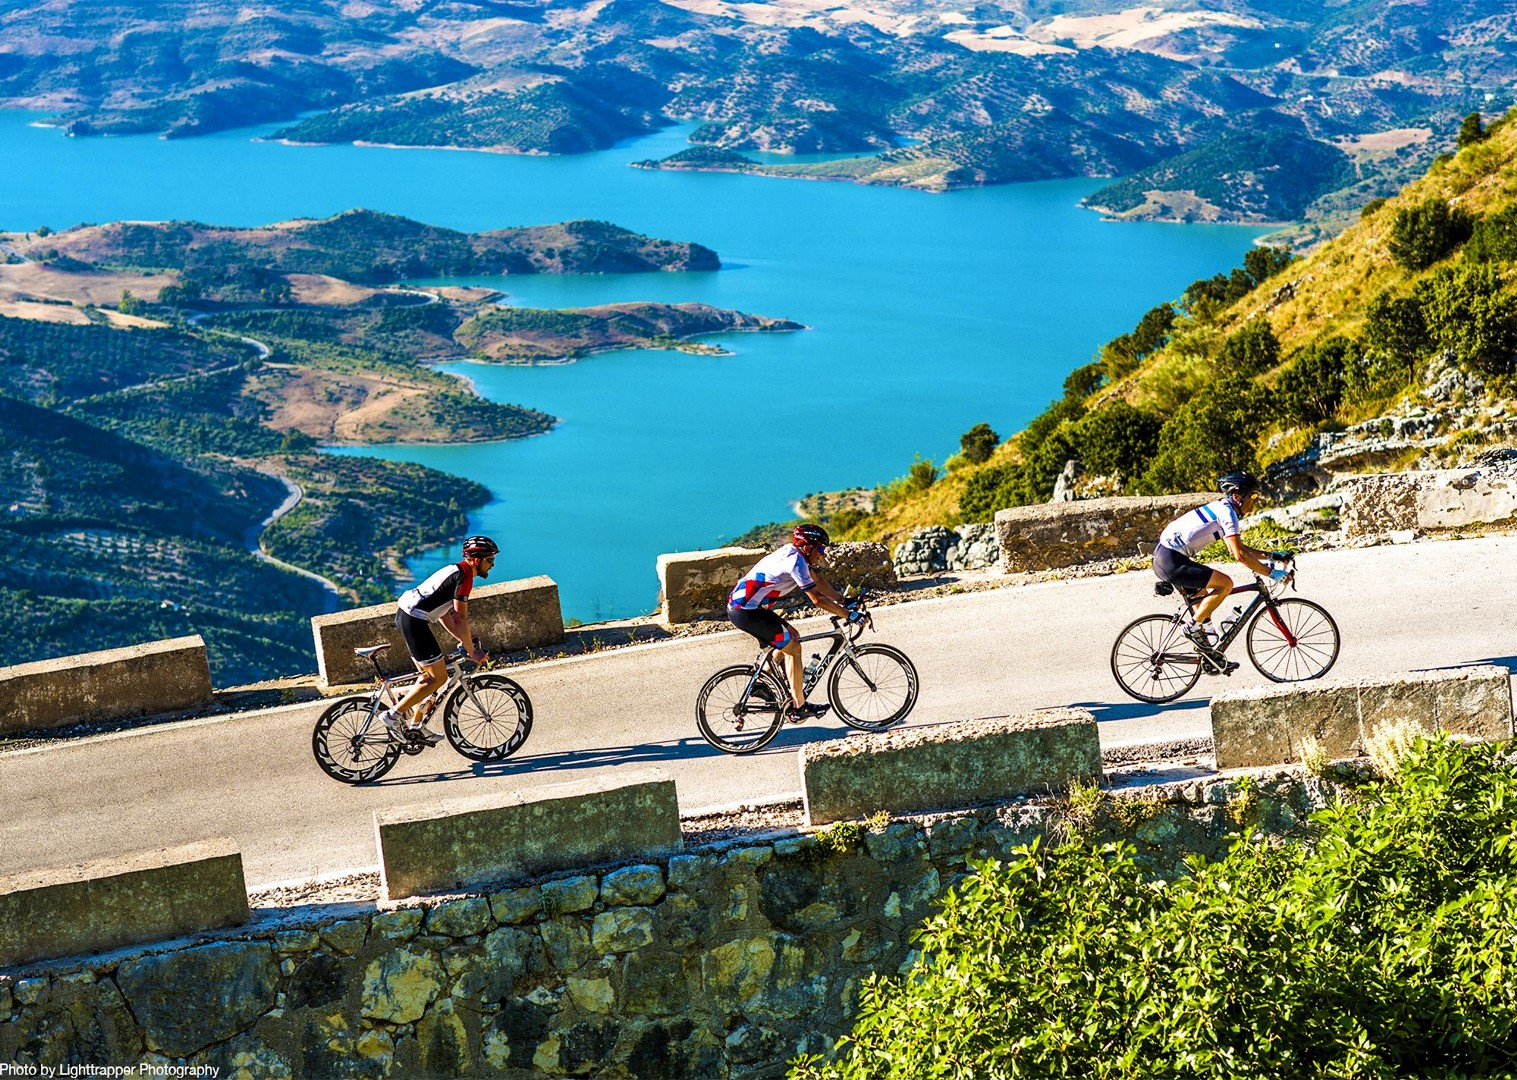 road-cycling-spain-puert-de-las-palomas-guided-cycling-tour.jpg - Southern Spain - Andalucia - Los Pueblos Blancos - Guided Road Cycling Holiday - Road Cycling